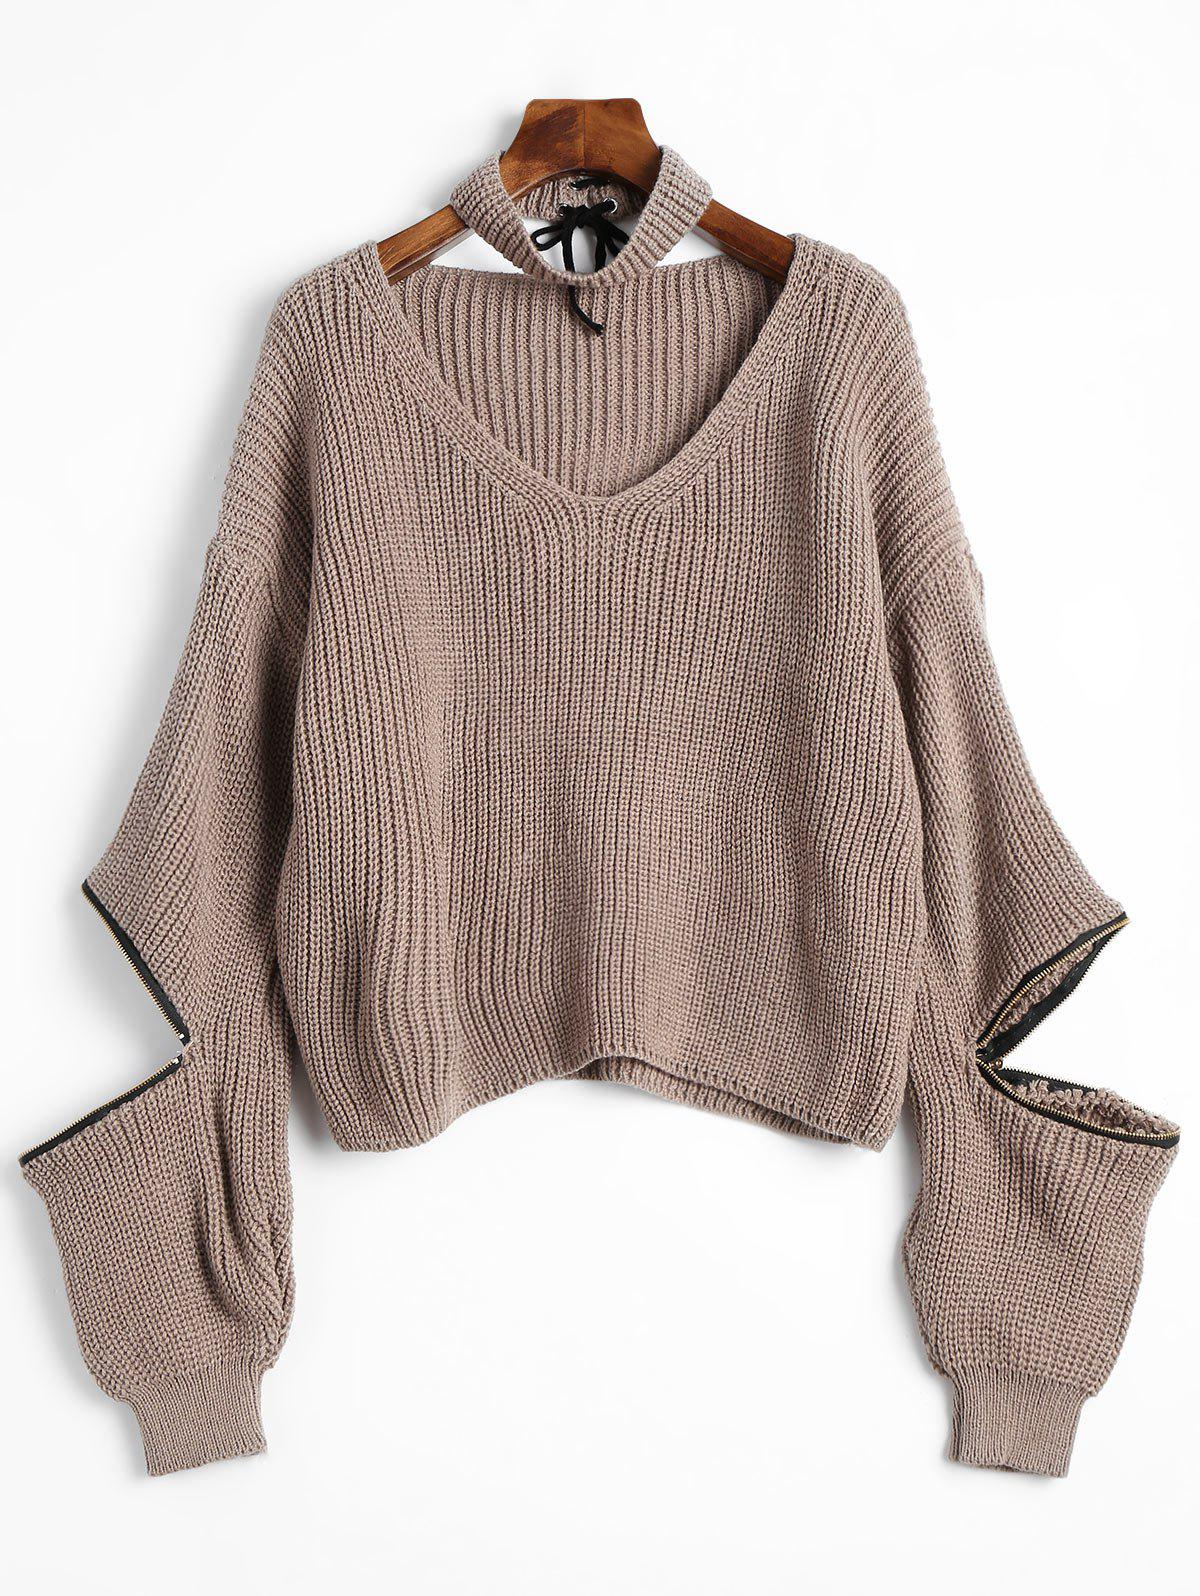 Zip Embellished V Neck Sweater with Choker - KHAKI ONE SIZE